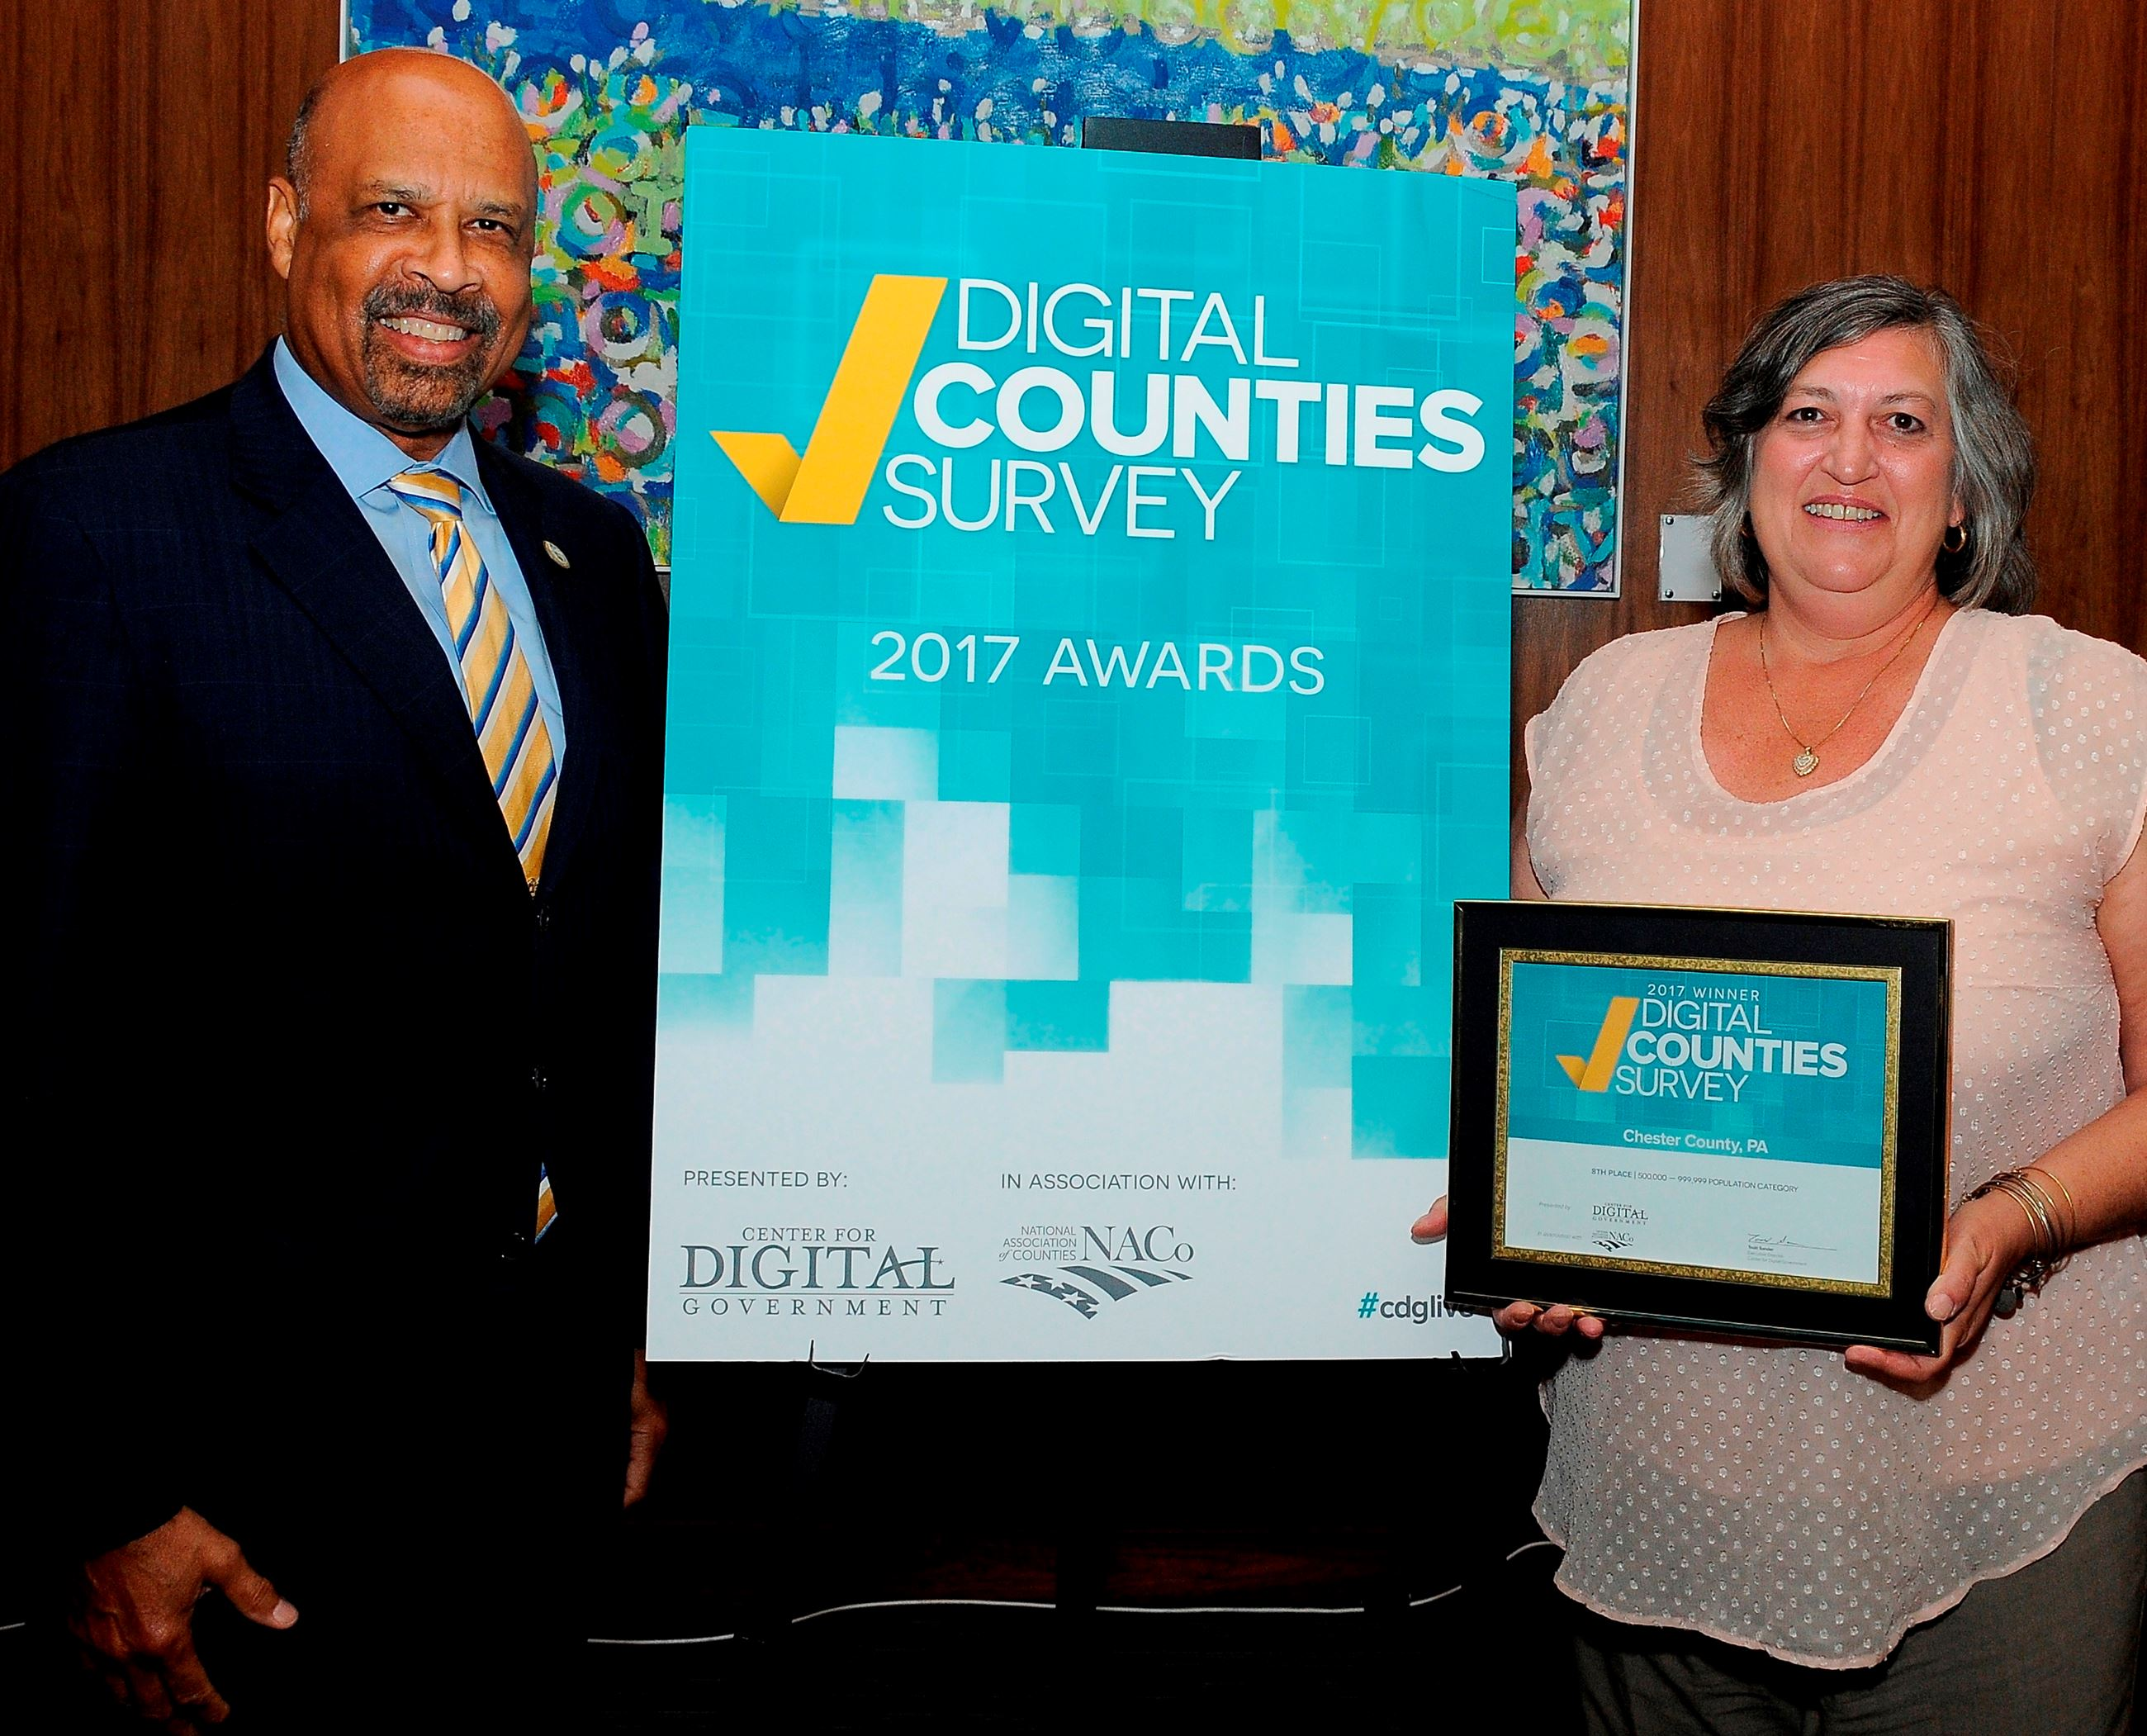 Digital Counties Survey 2017 award